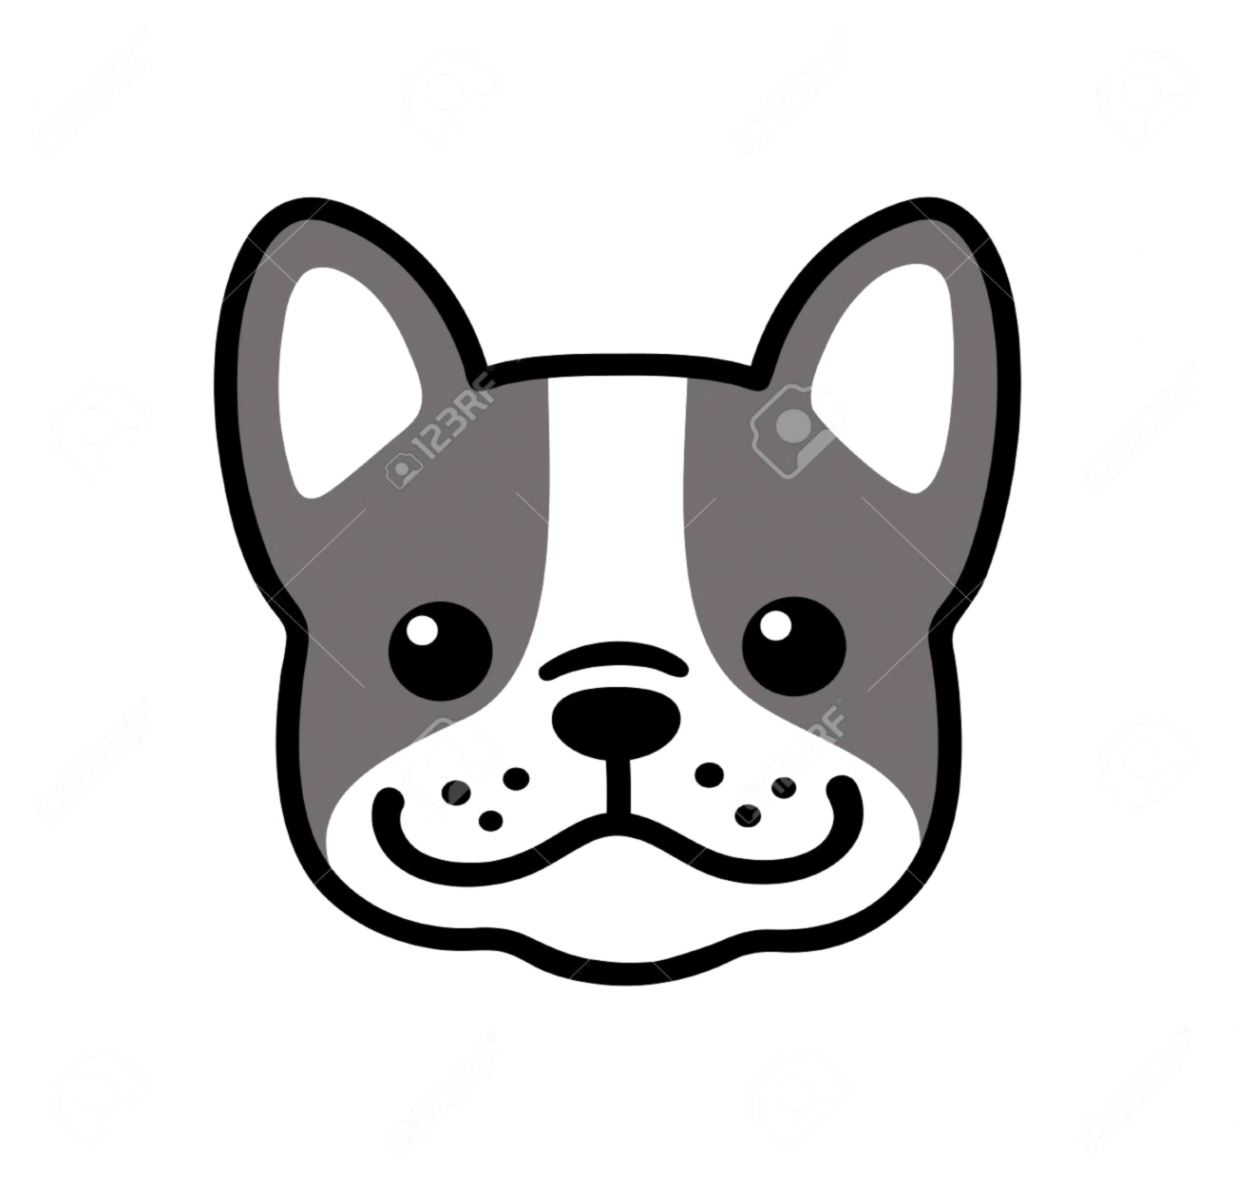 1235x1183 cute dog face drawing wallpapers engine